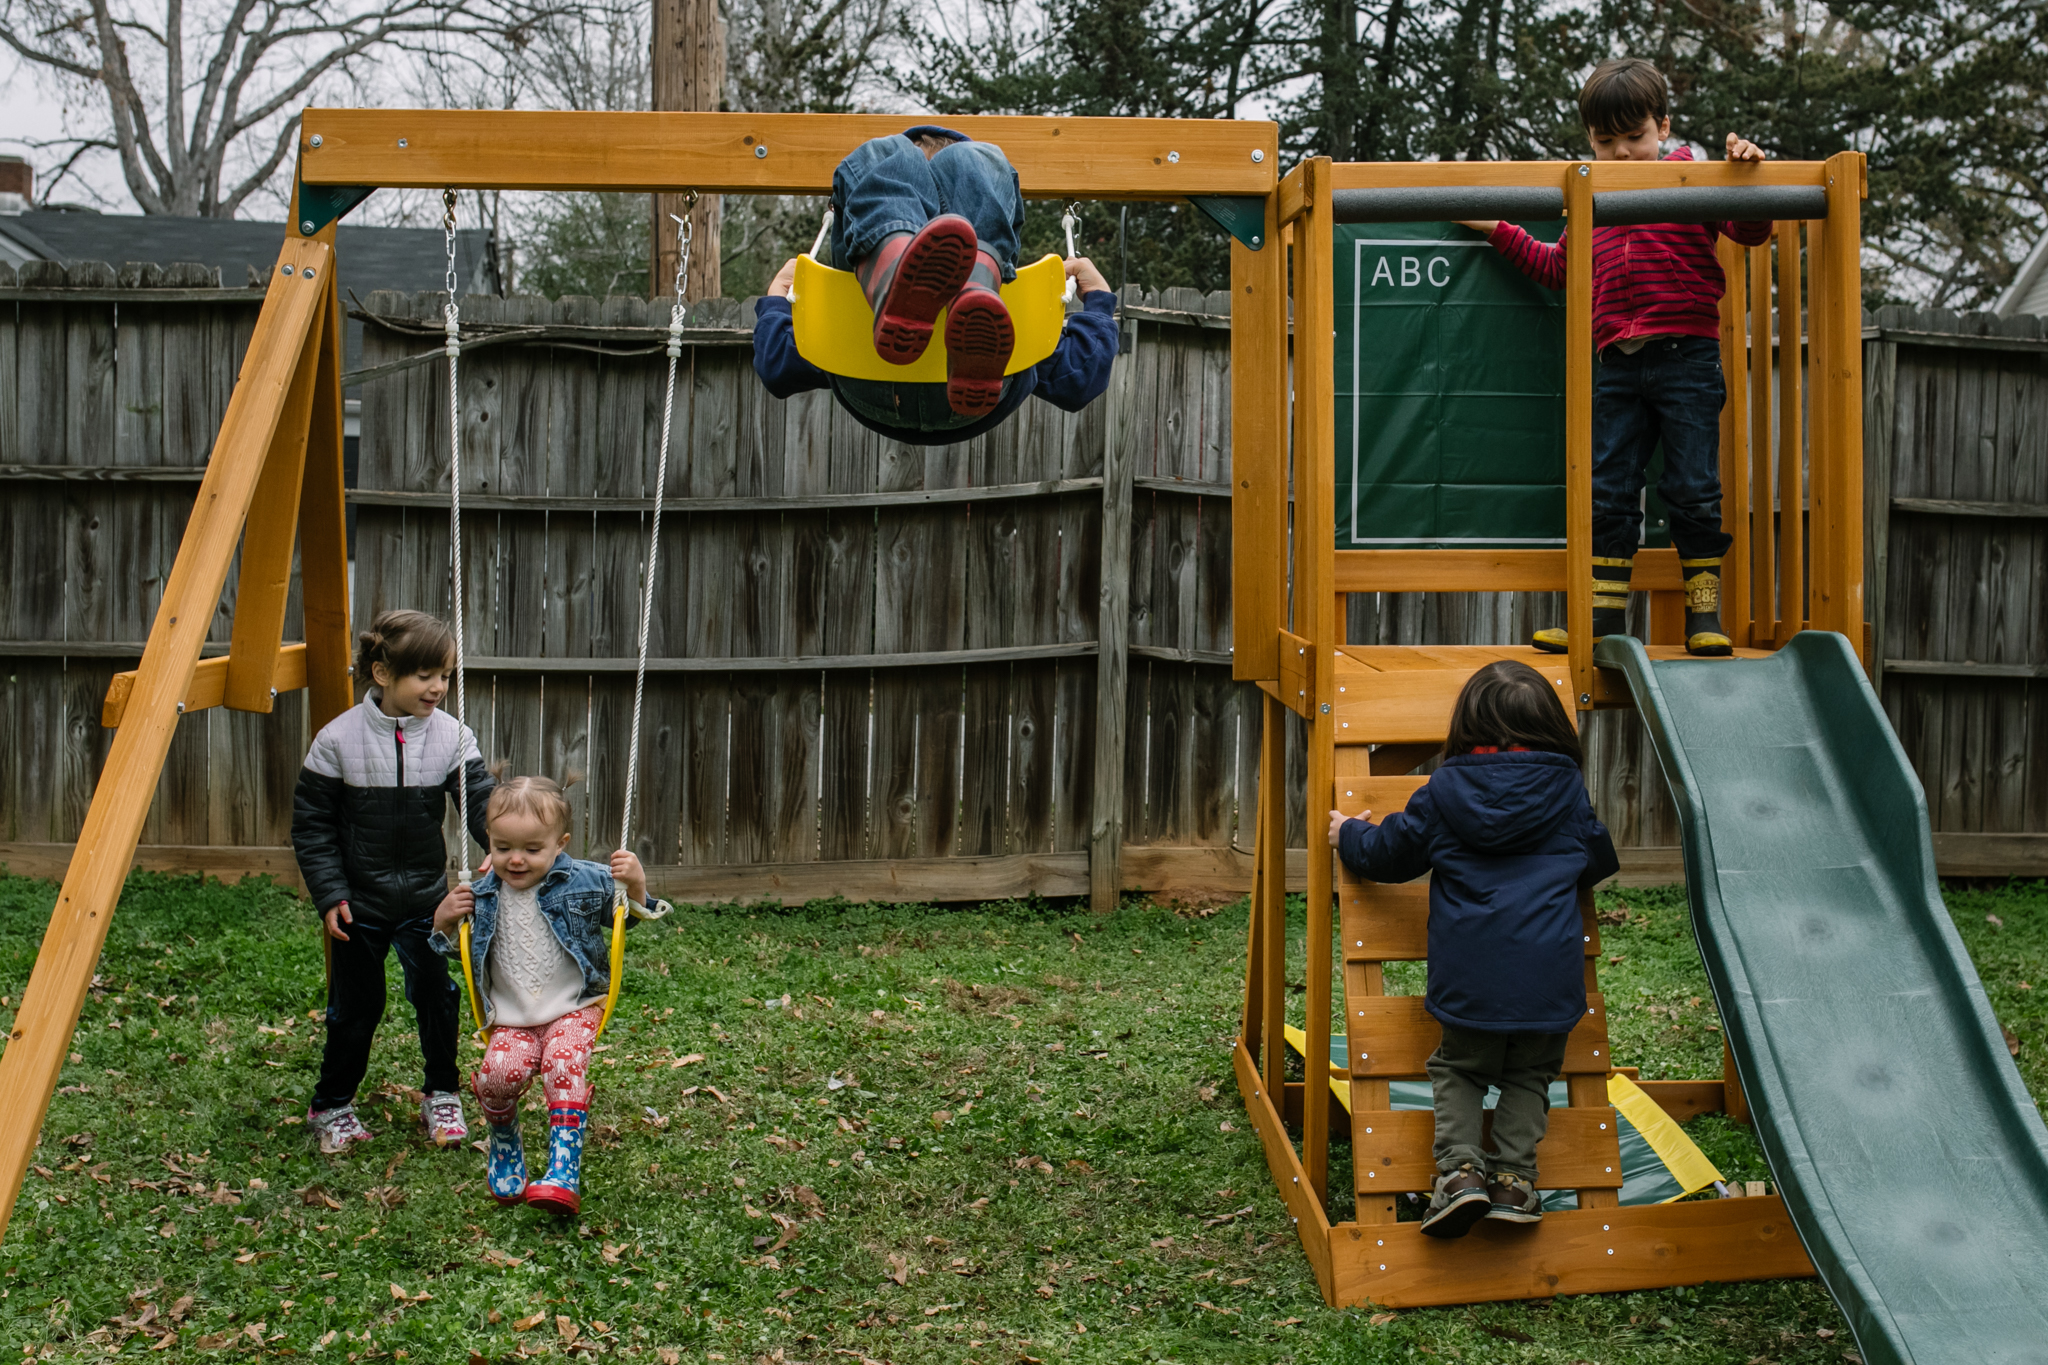 Cousins play together on a new swingset